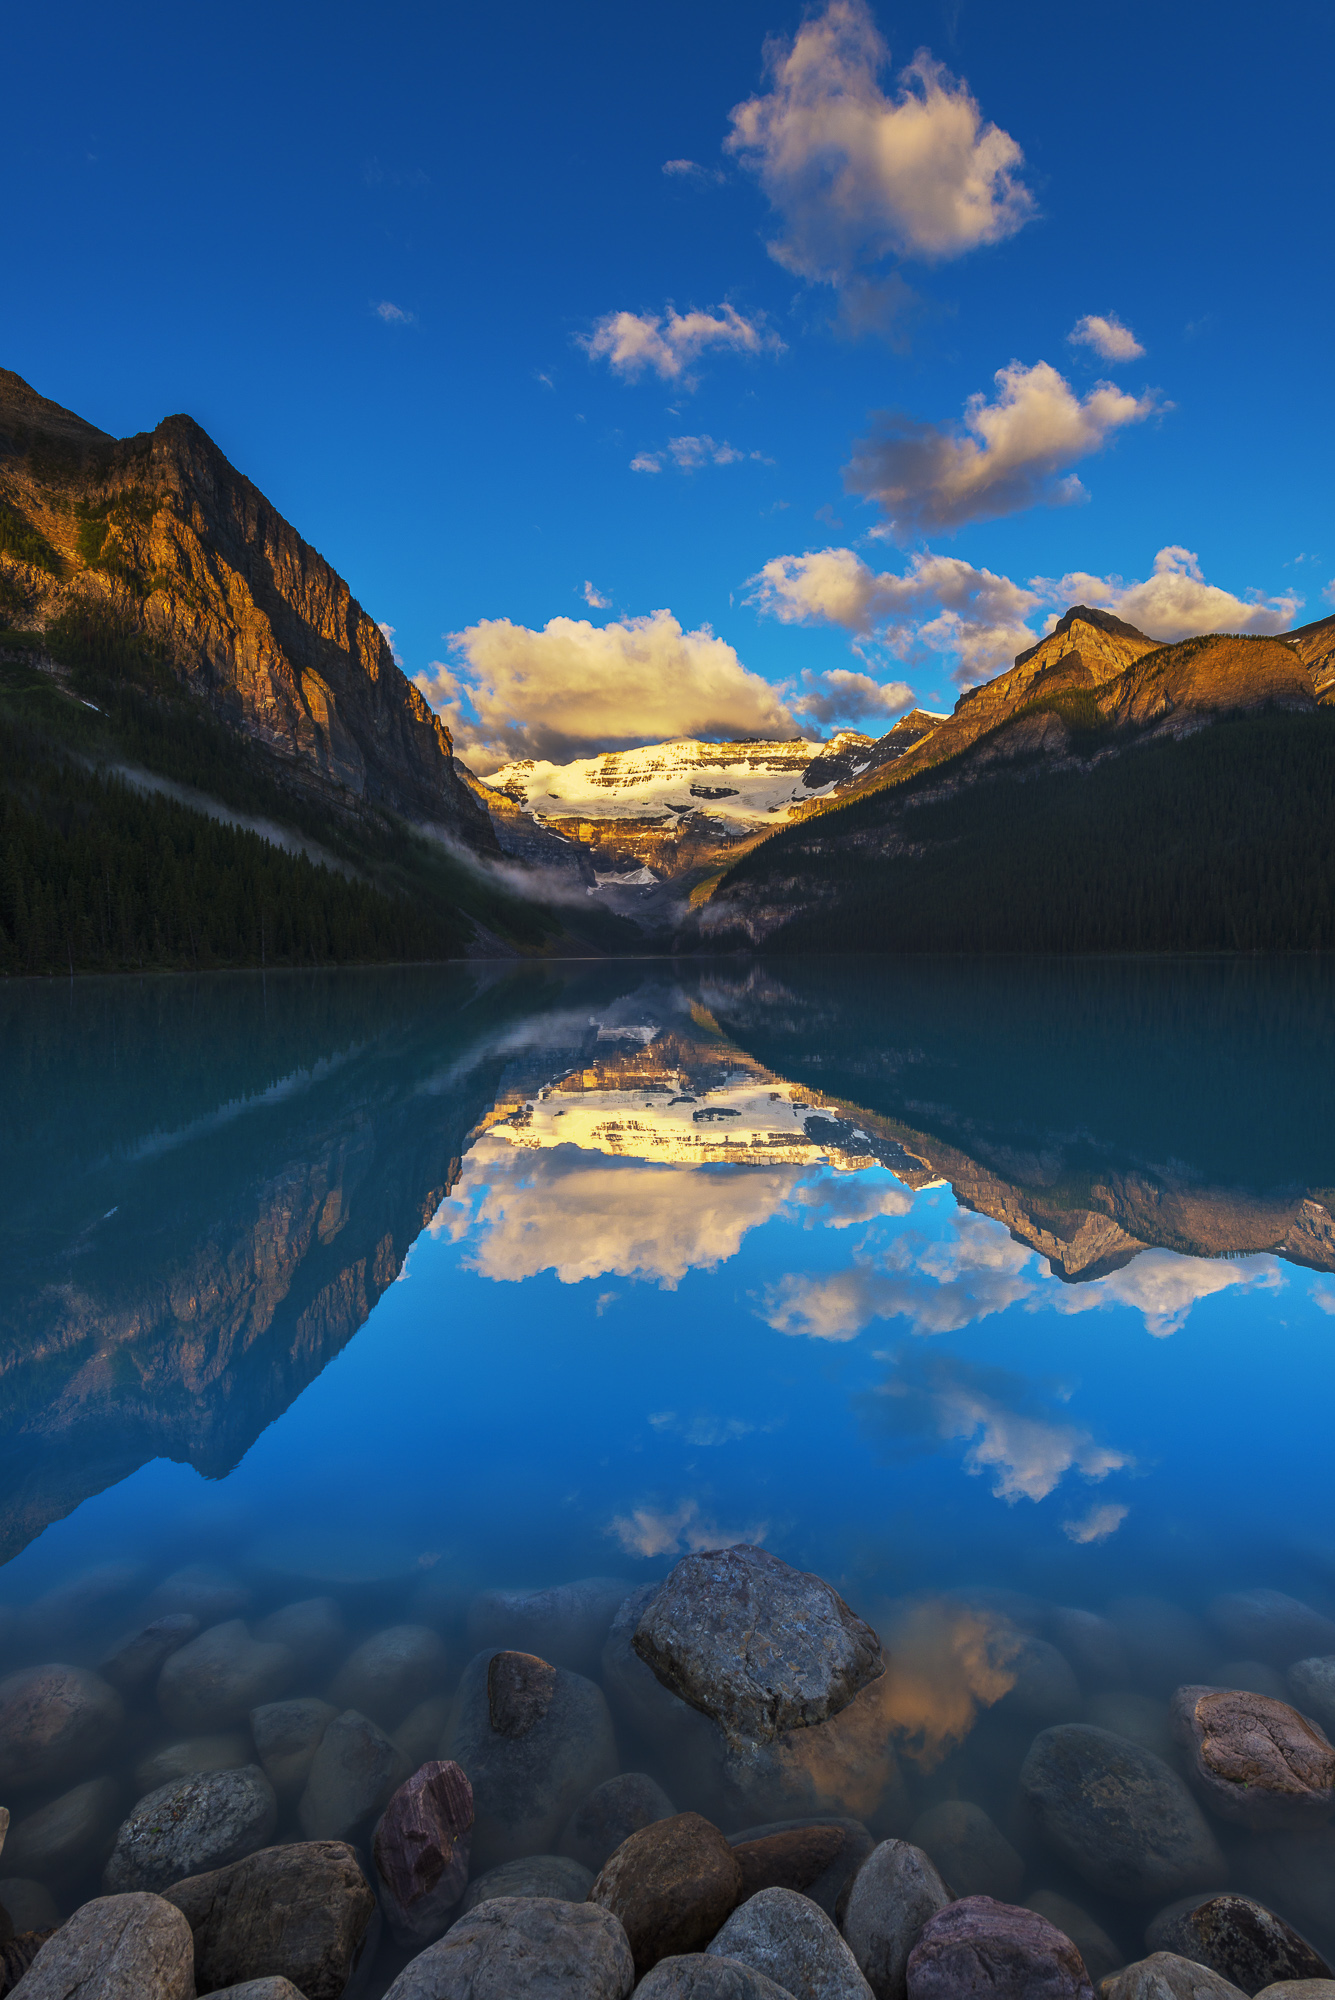 Lake Louise Reflections, Banff National Park, Alberta, Canada